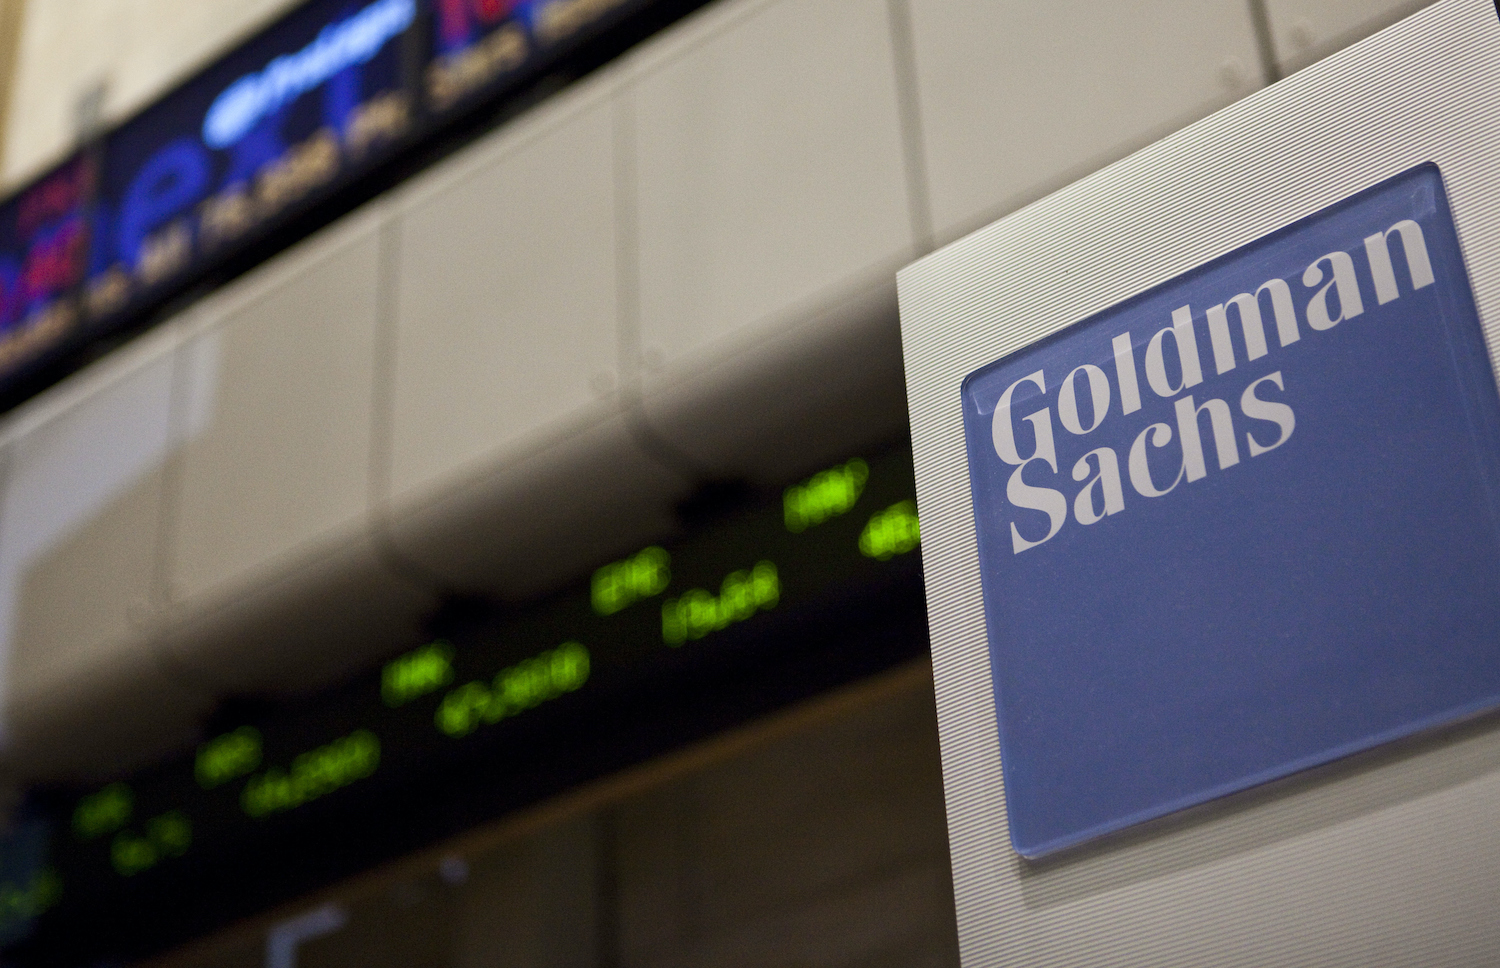 40% of Goldman Sachs Clients Reported Exposure to Crypto: Survey